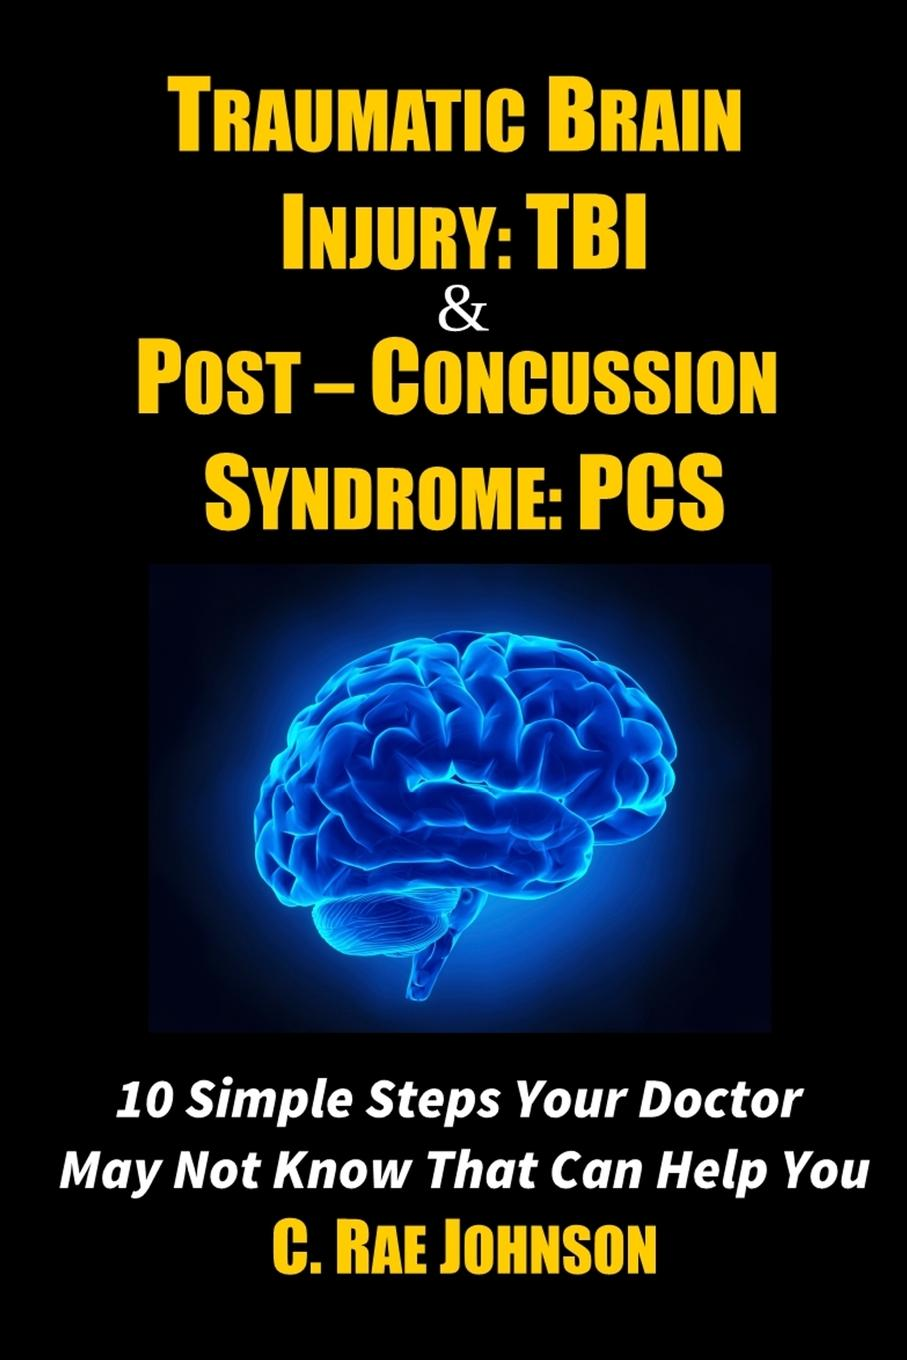 C. Rae Johnson Traumatic Brain Injury. TBI . Post-Concussion Syndrome: PCS 10 Simple Steps Your Doctor May Not Know That Can Help You diaz arrastia ramon traumatic brain injury